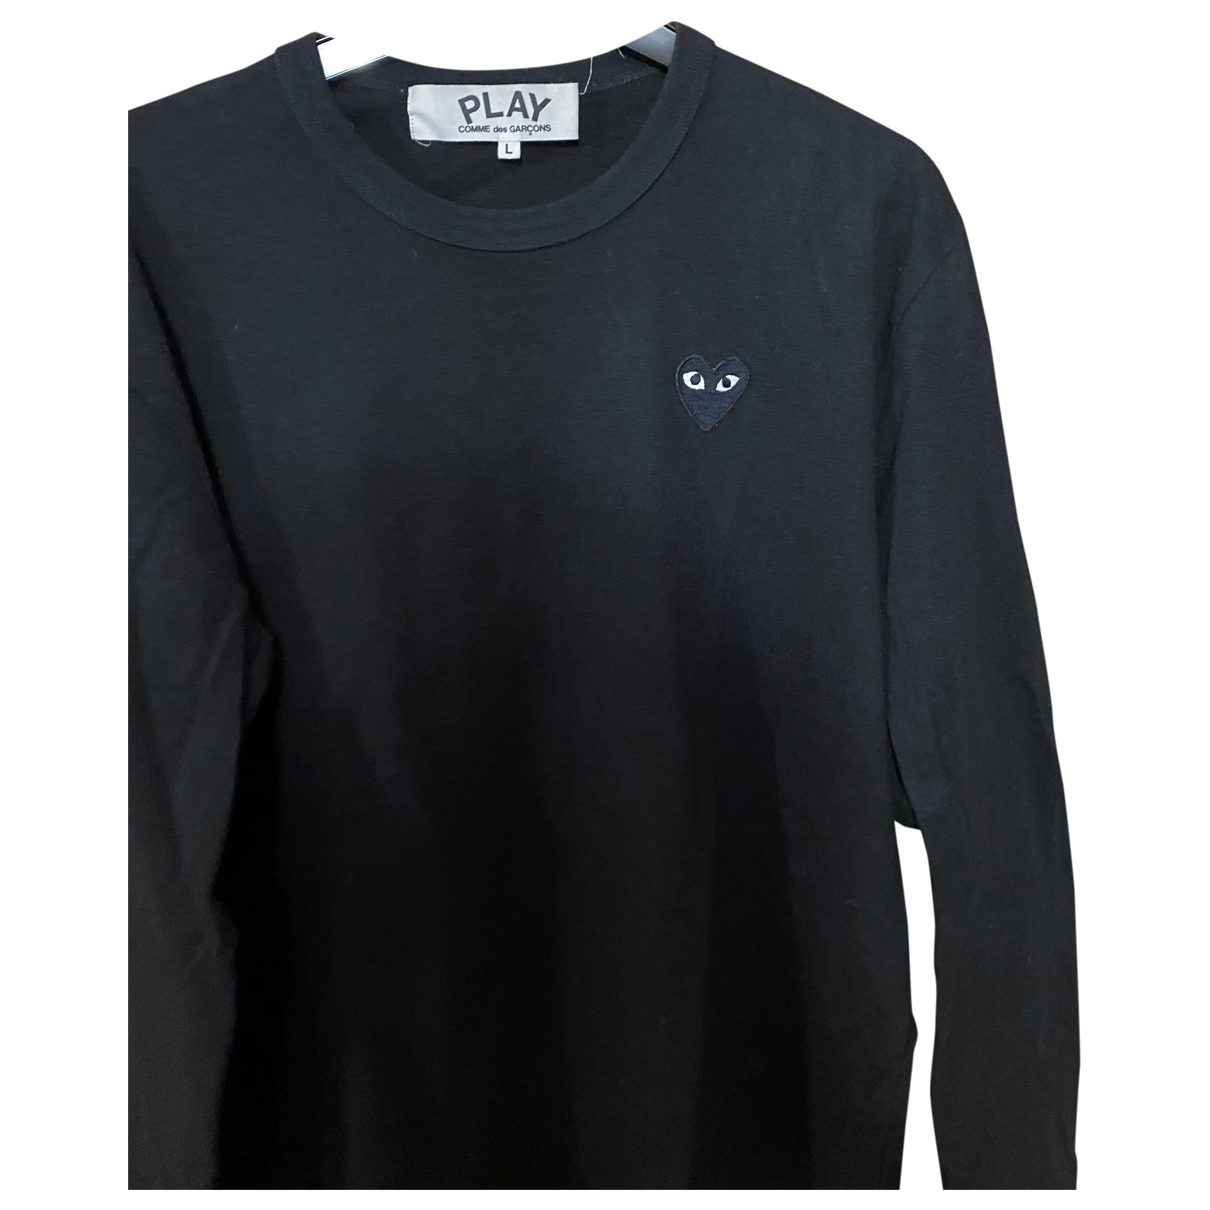 Play Comme Des Garçons N Black Cotton Knitwear & Sweatshirts for Men L International